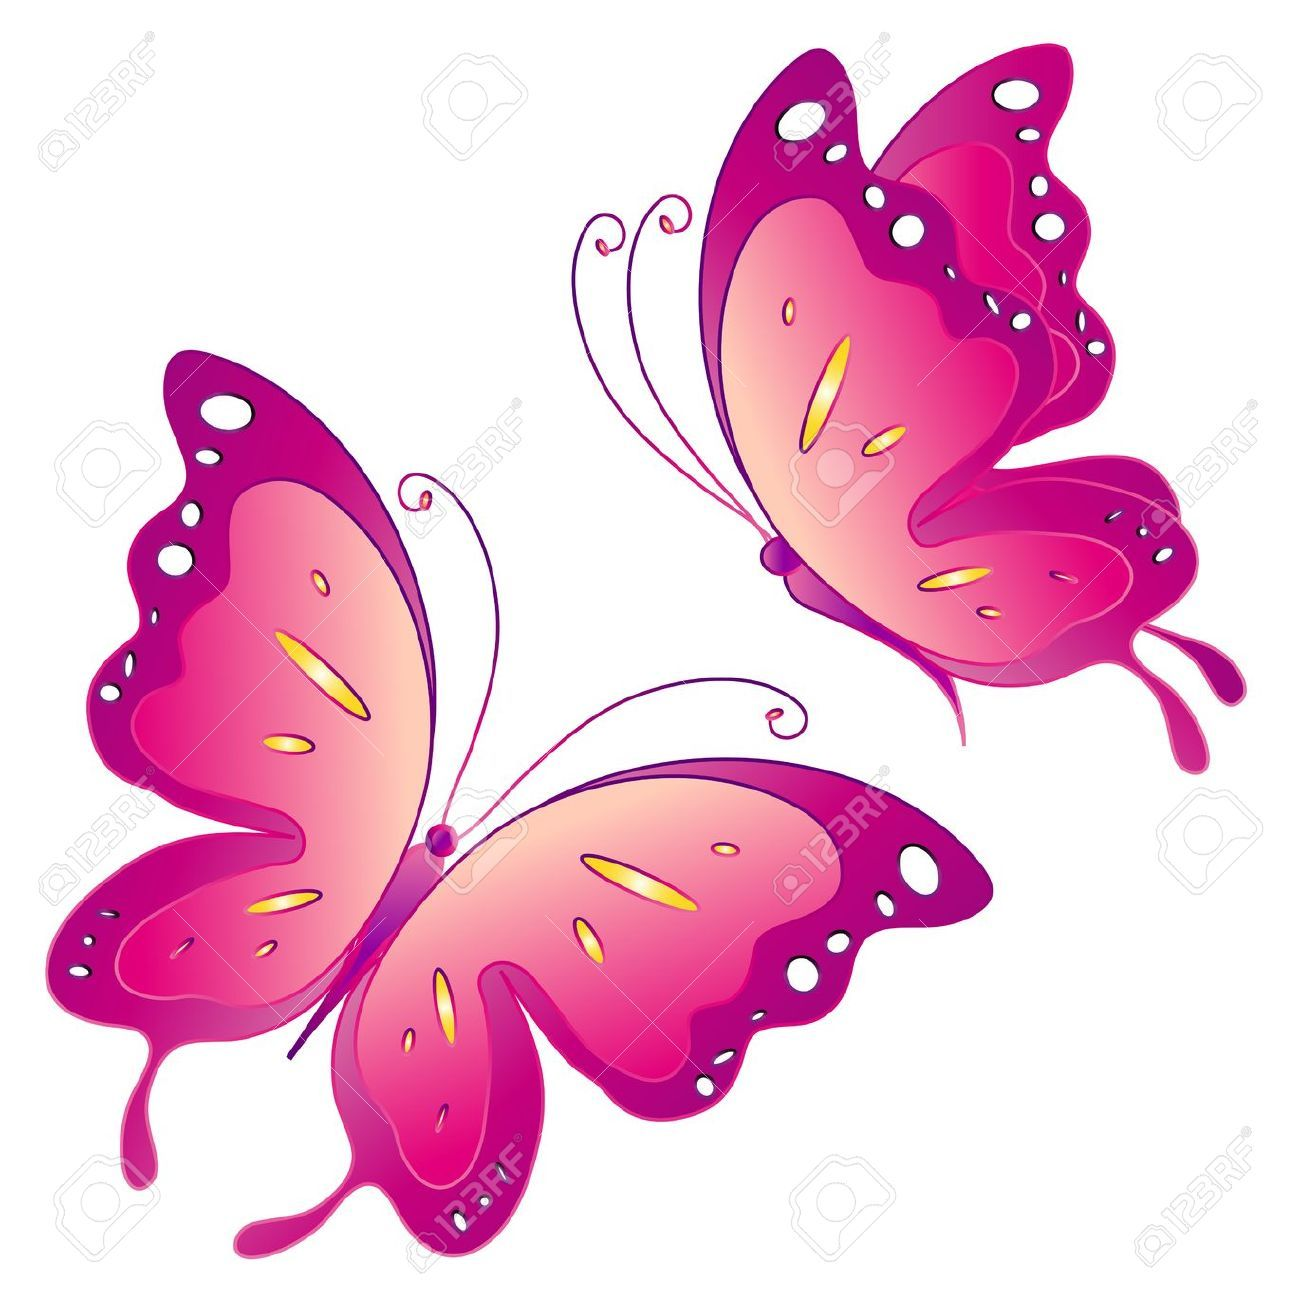 Pink butterfly vector background hd wallpapers pink butterfly vector - Find This Pin And More On Butterfly Silhouettes Vectors Clipart Svg Templates Cutting Files